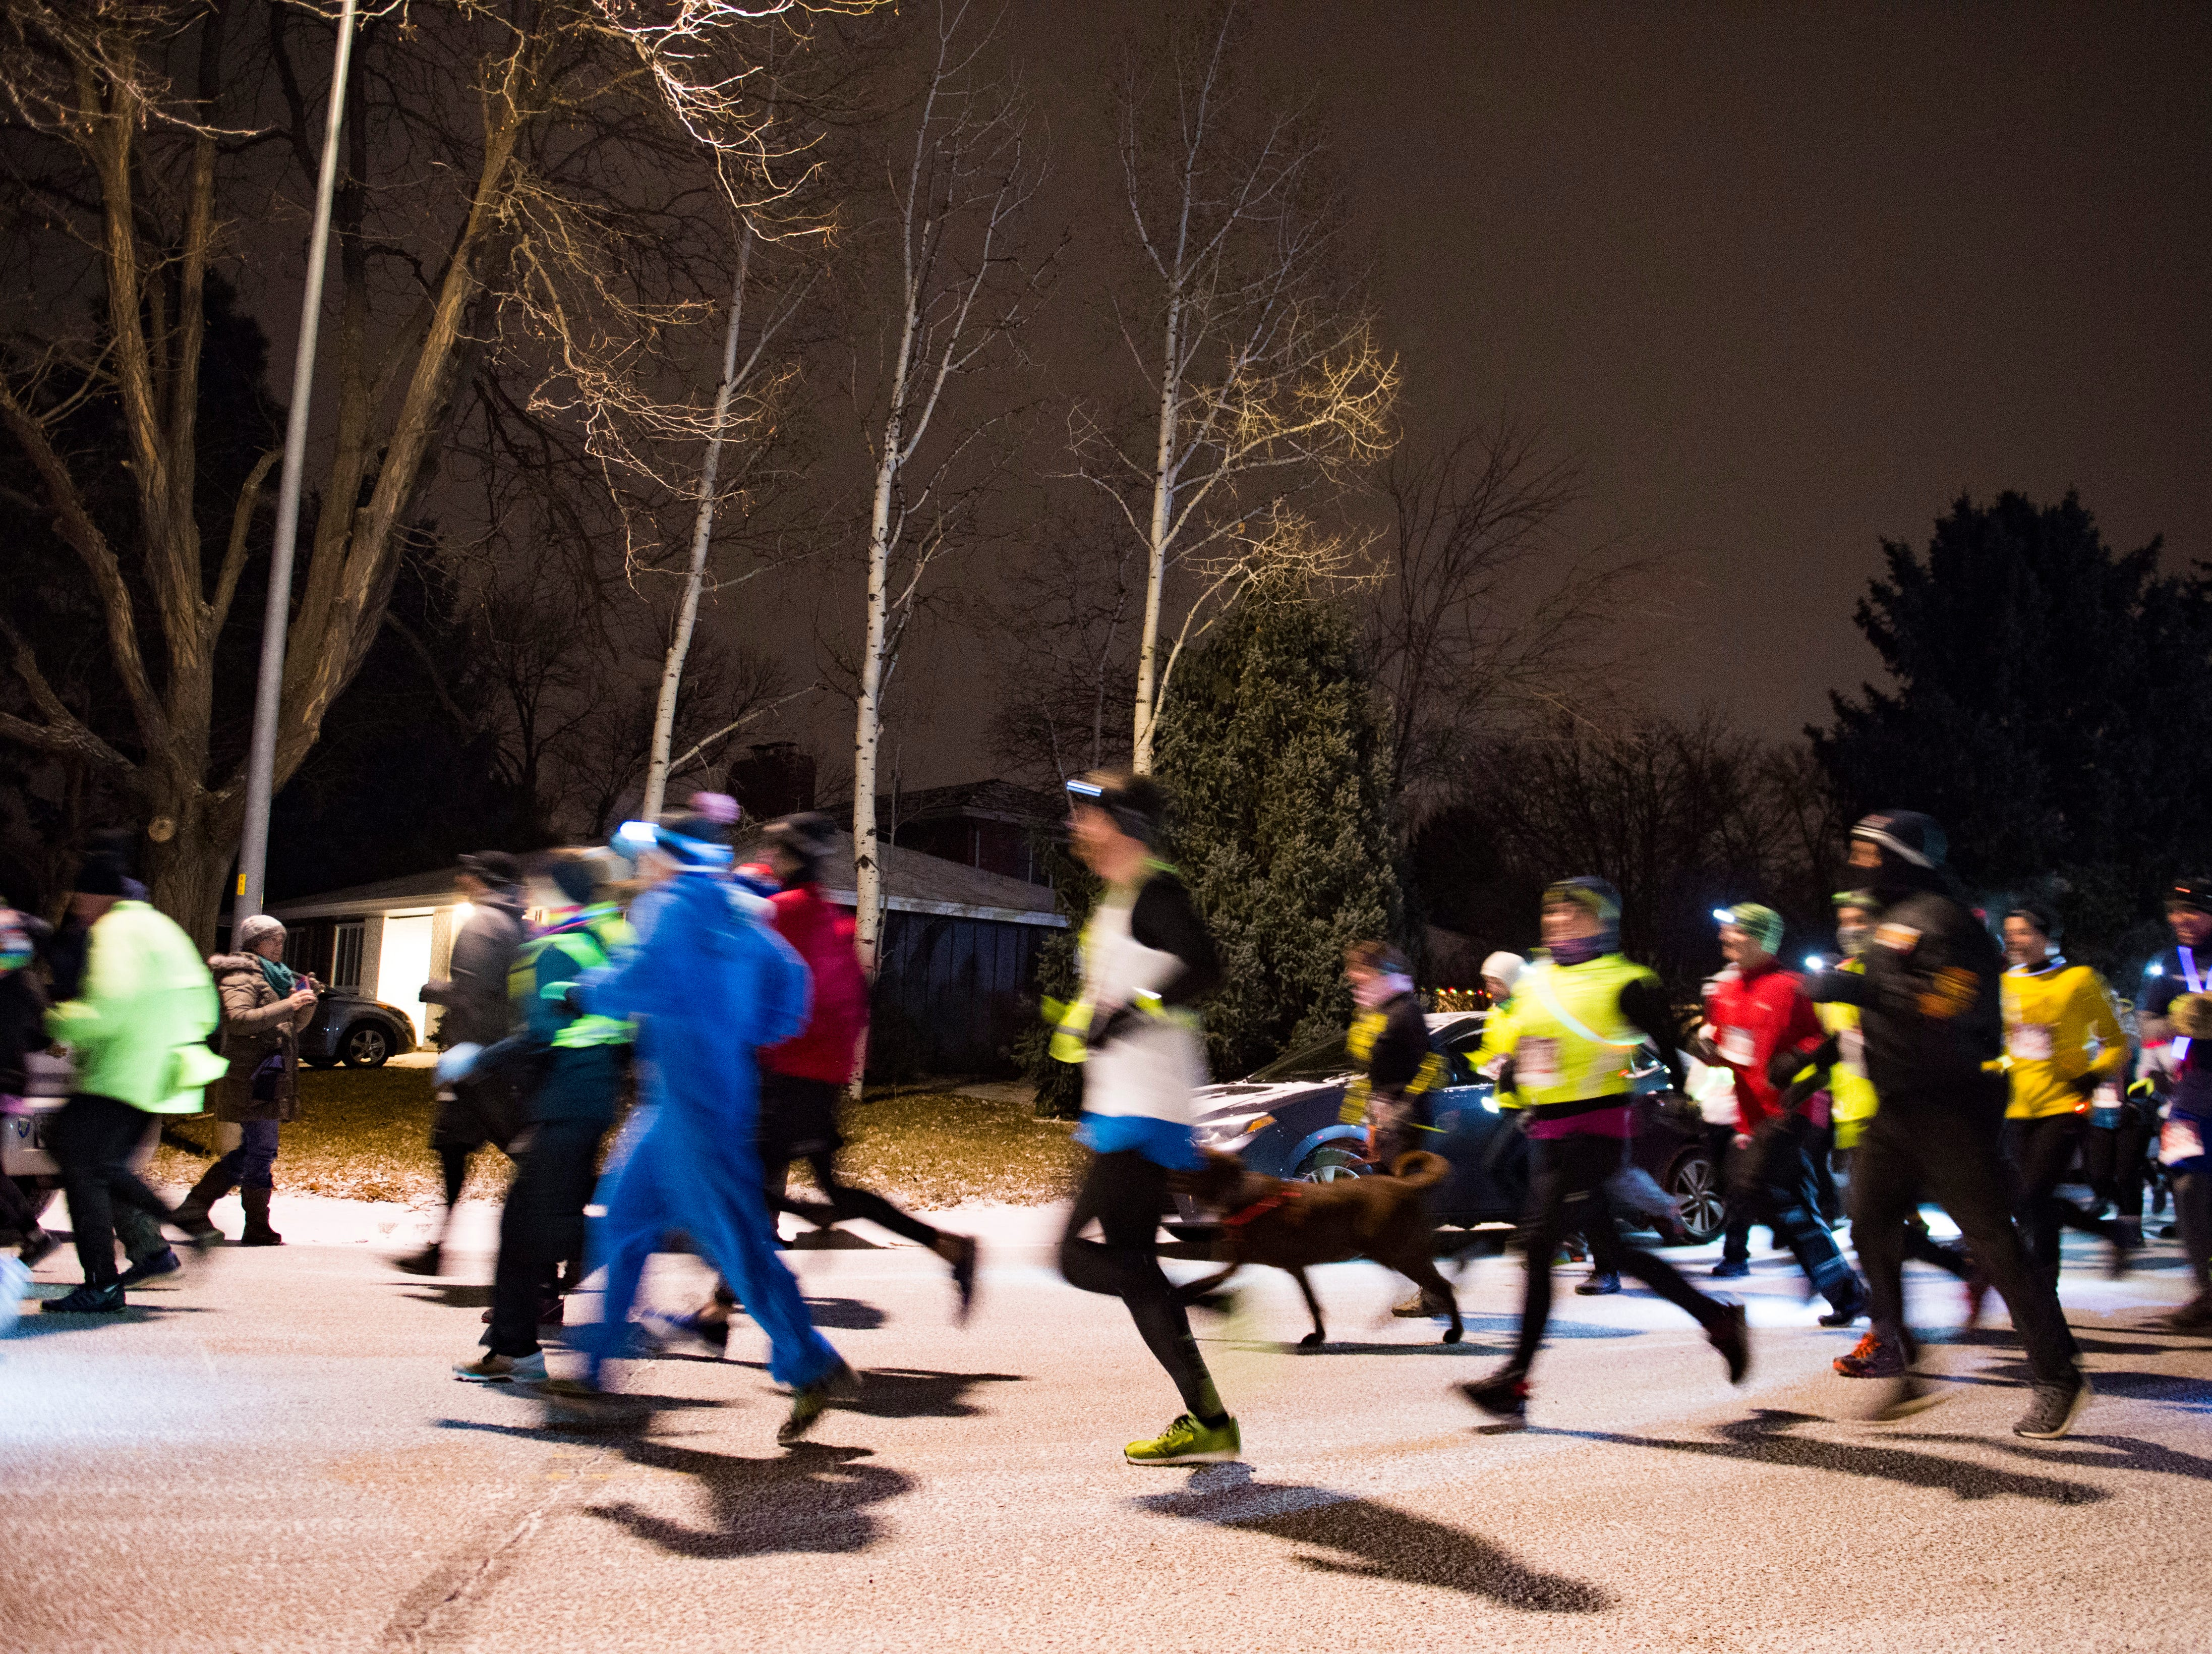 Runners begin the Resolution Run 5K at Our Saviour's Lutheran Church on December 31, 2018. People braved single-digit temperatures to ring in the new year with the run.